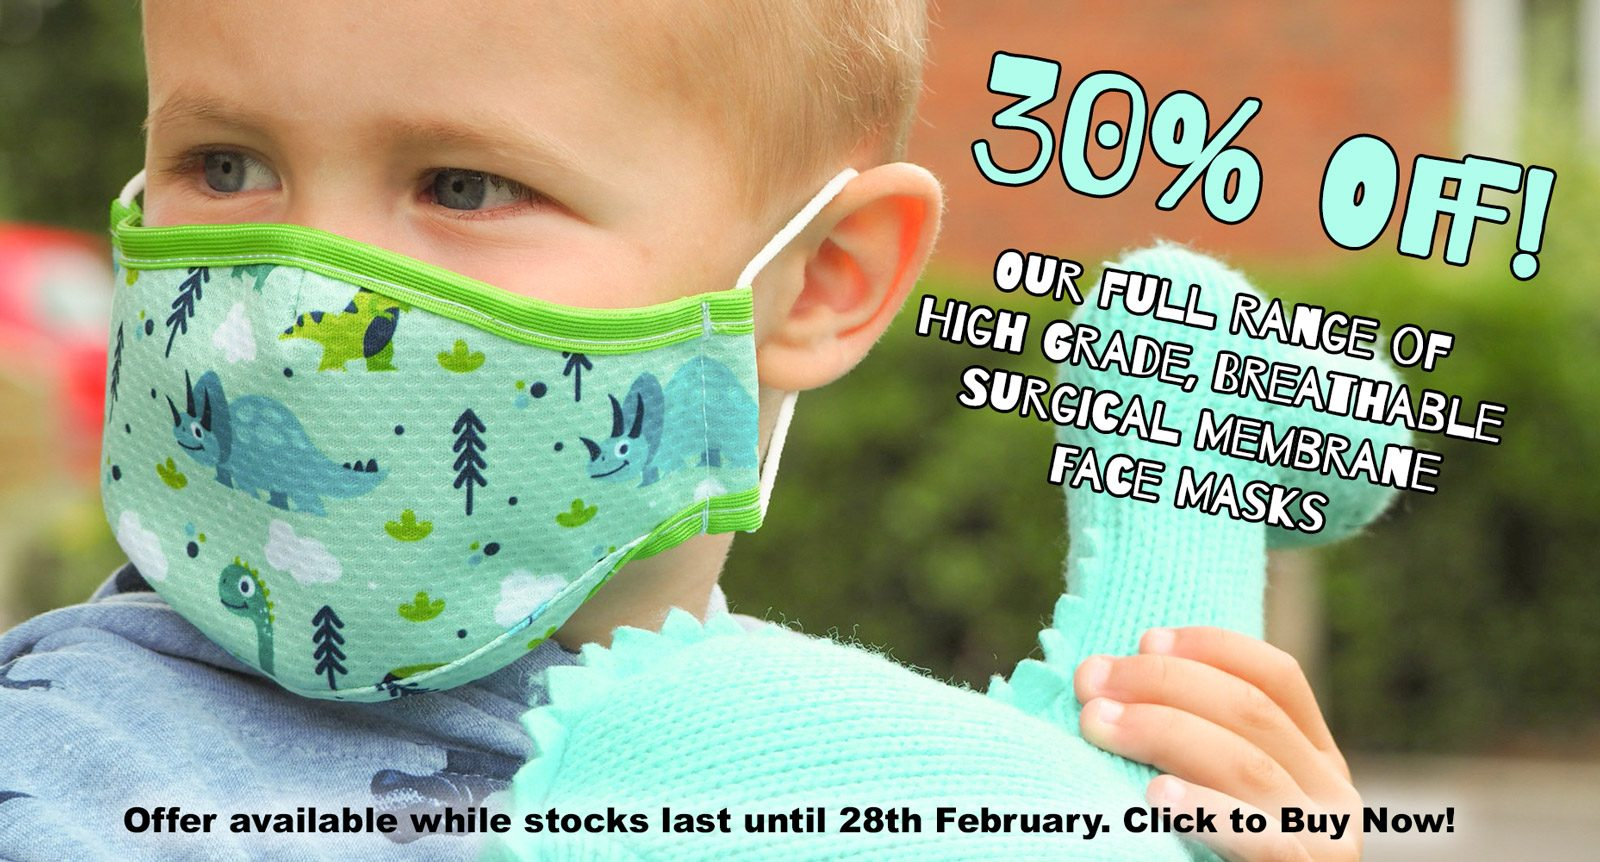 Surgical Grade Masks-Offer